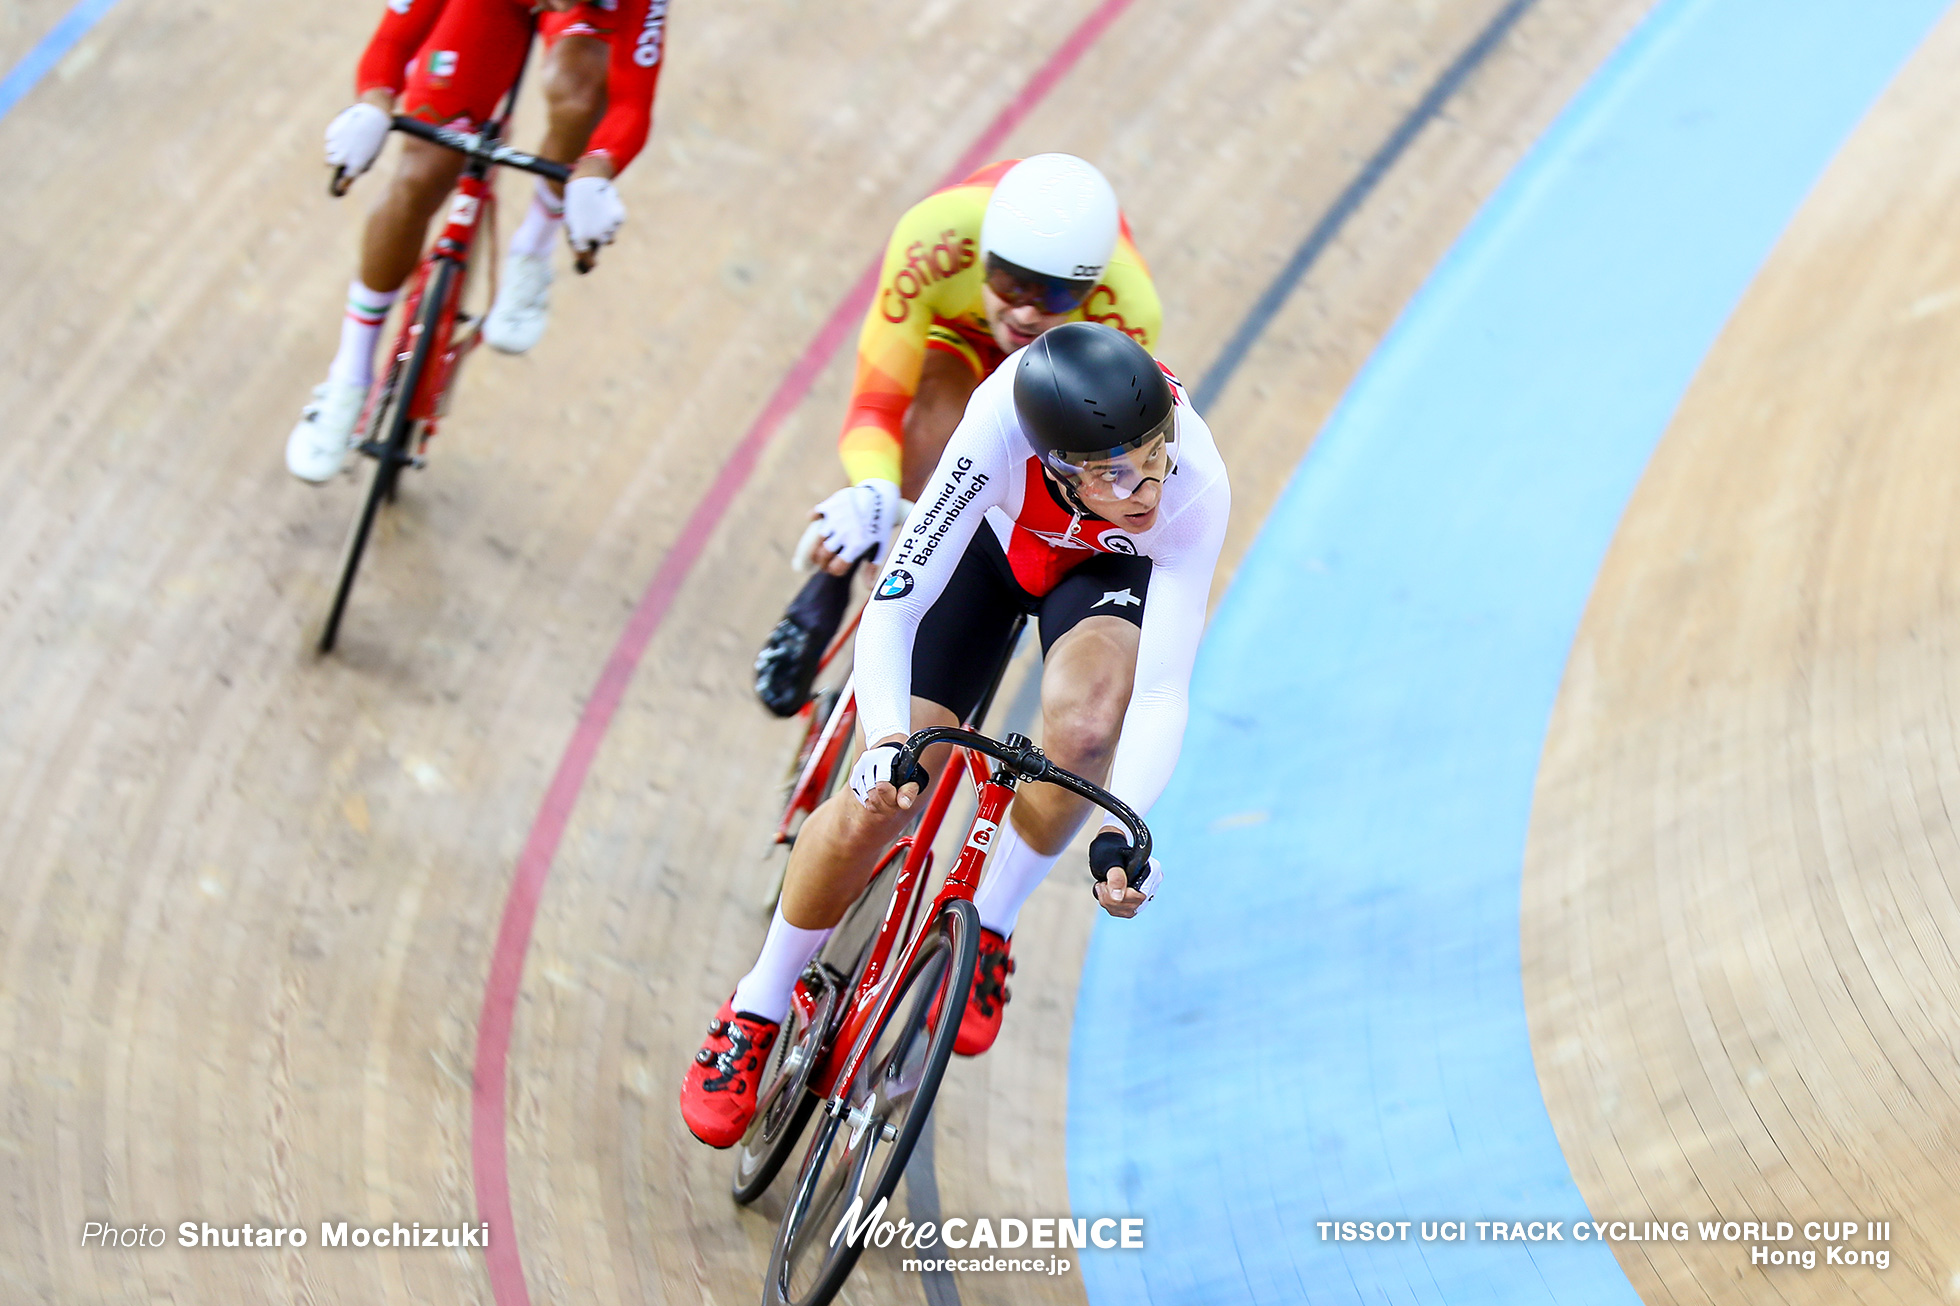 Scratch Race / Men's Omnium / TISSOT UCI TRACK CYCLING WORLD CUP III, Hong Kong